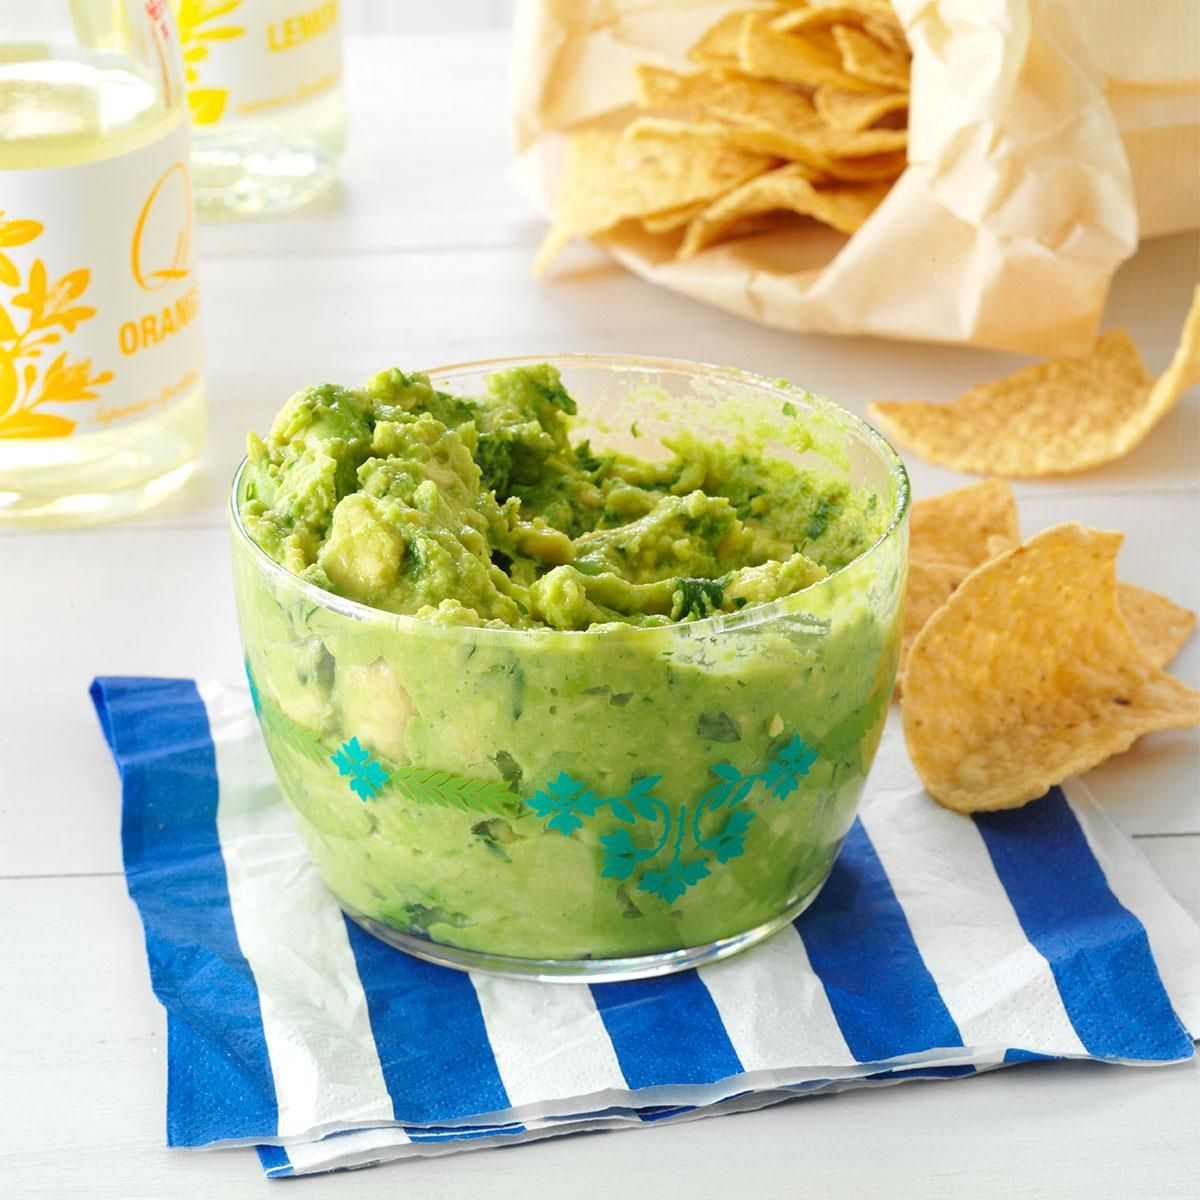 Homemade Guacamole Recipe -Nothing is better than fresh guacamole when you're eating something hot. It's easy to whip together in a matter of minutes and quickly tames anything that's too spicy. —Joan Hallford, North Richland Hills, Texas